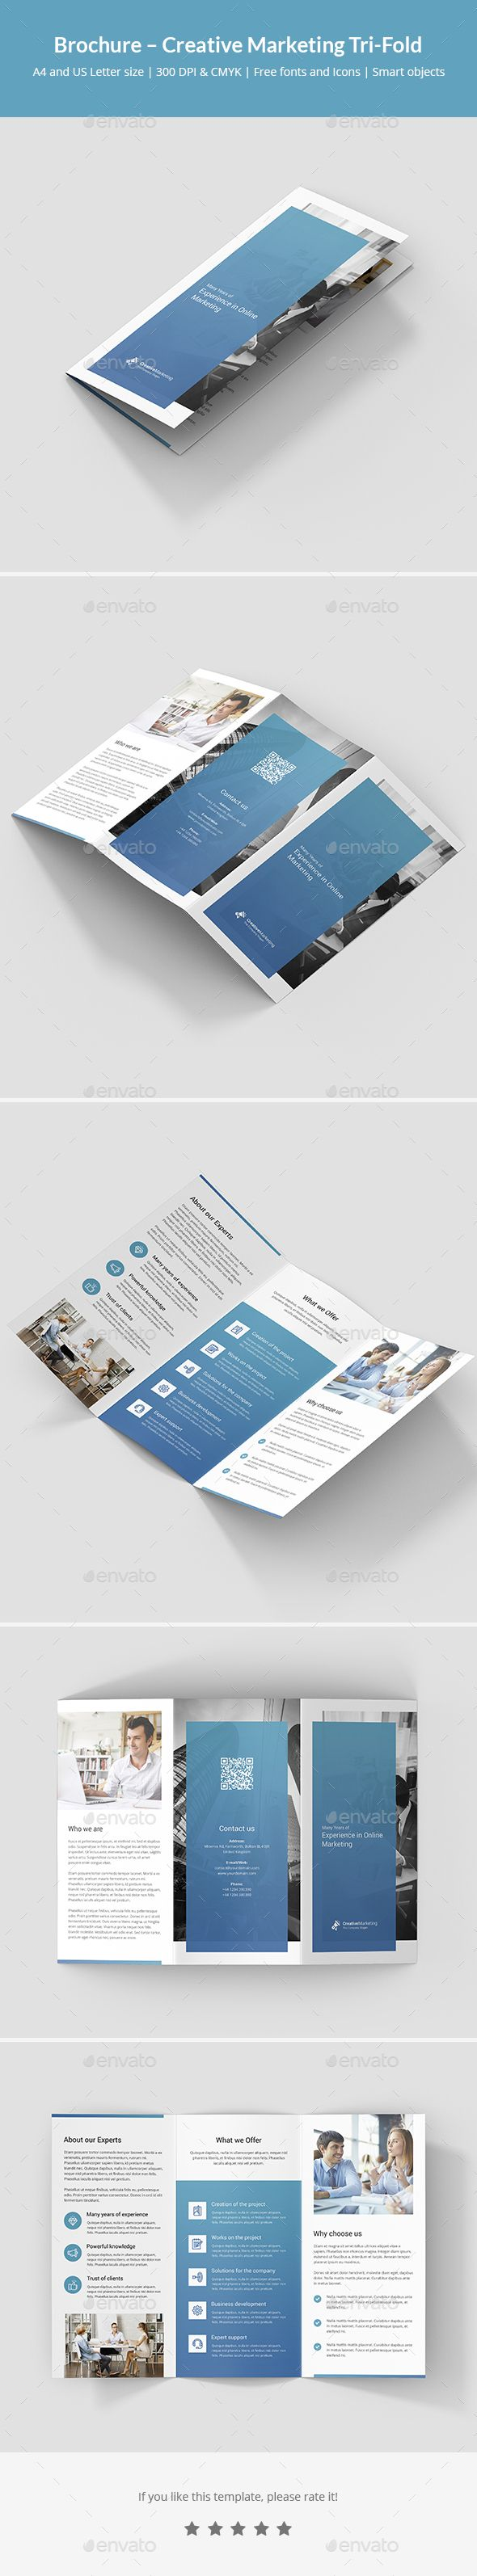 Brochure  Creative Marketing TriFold